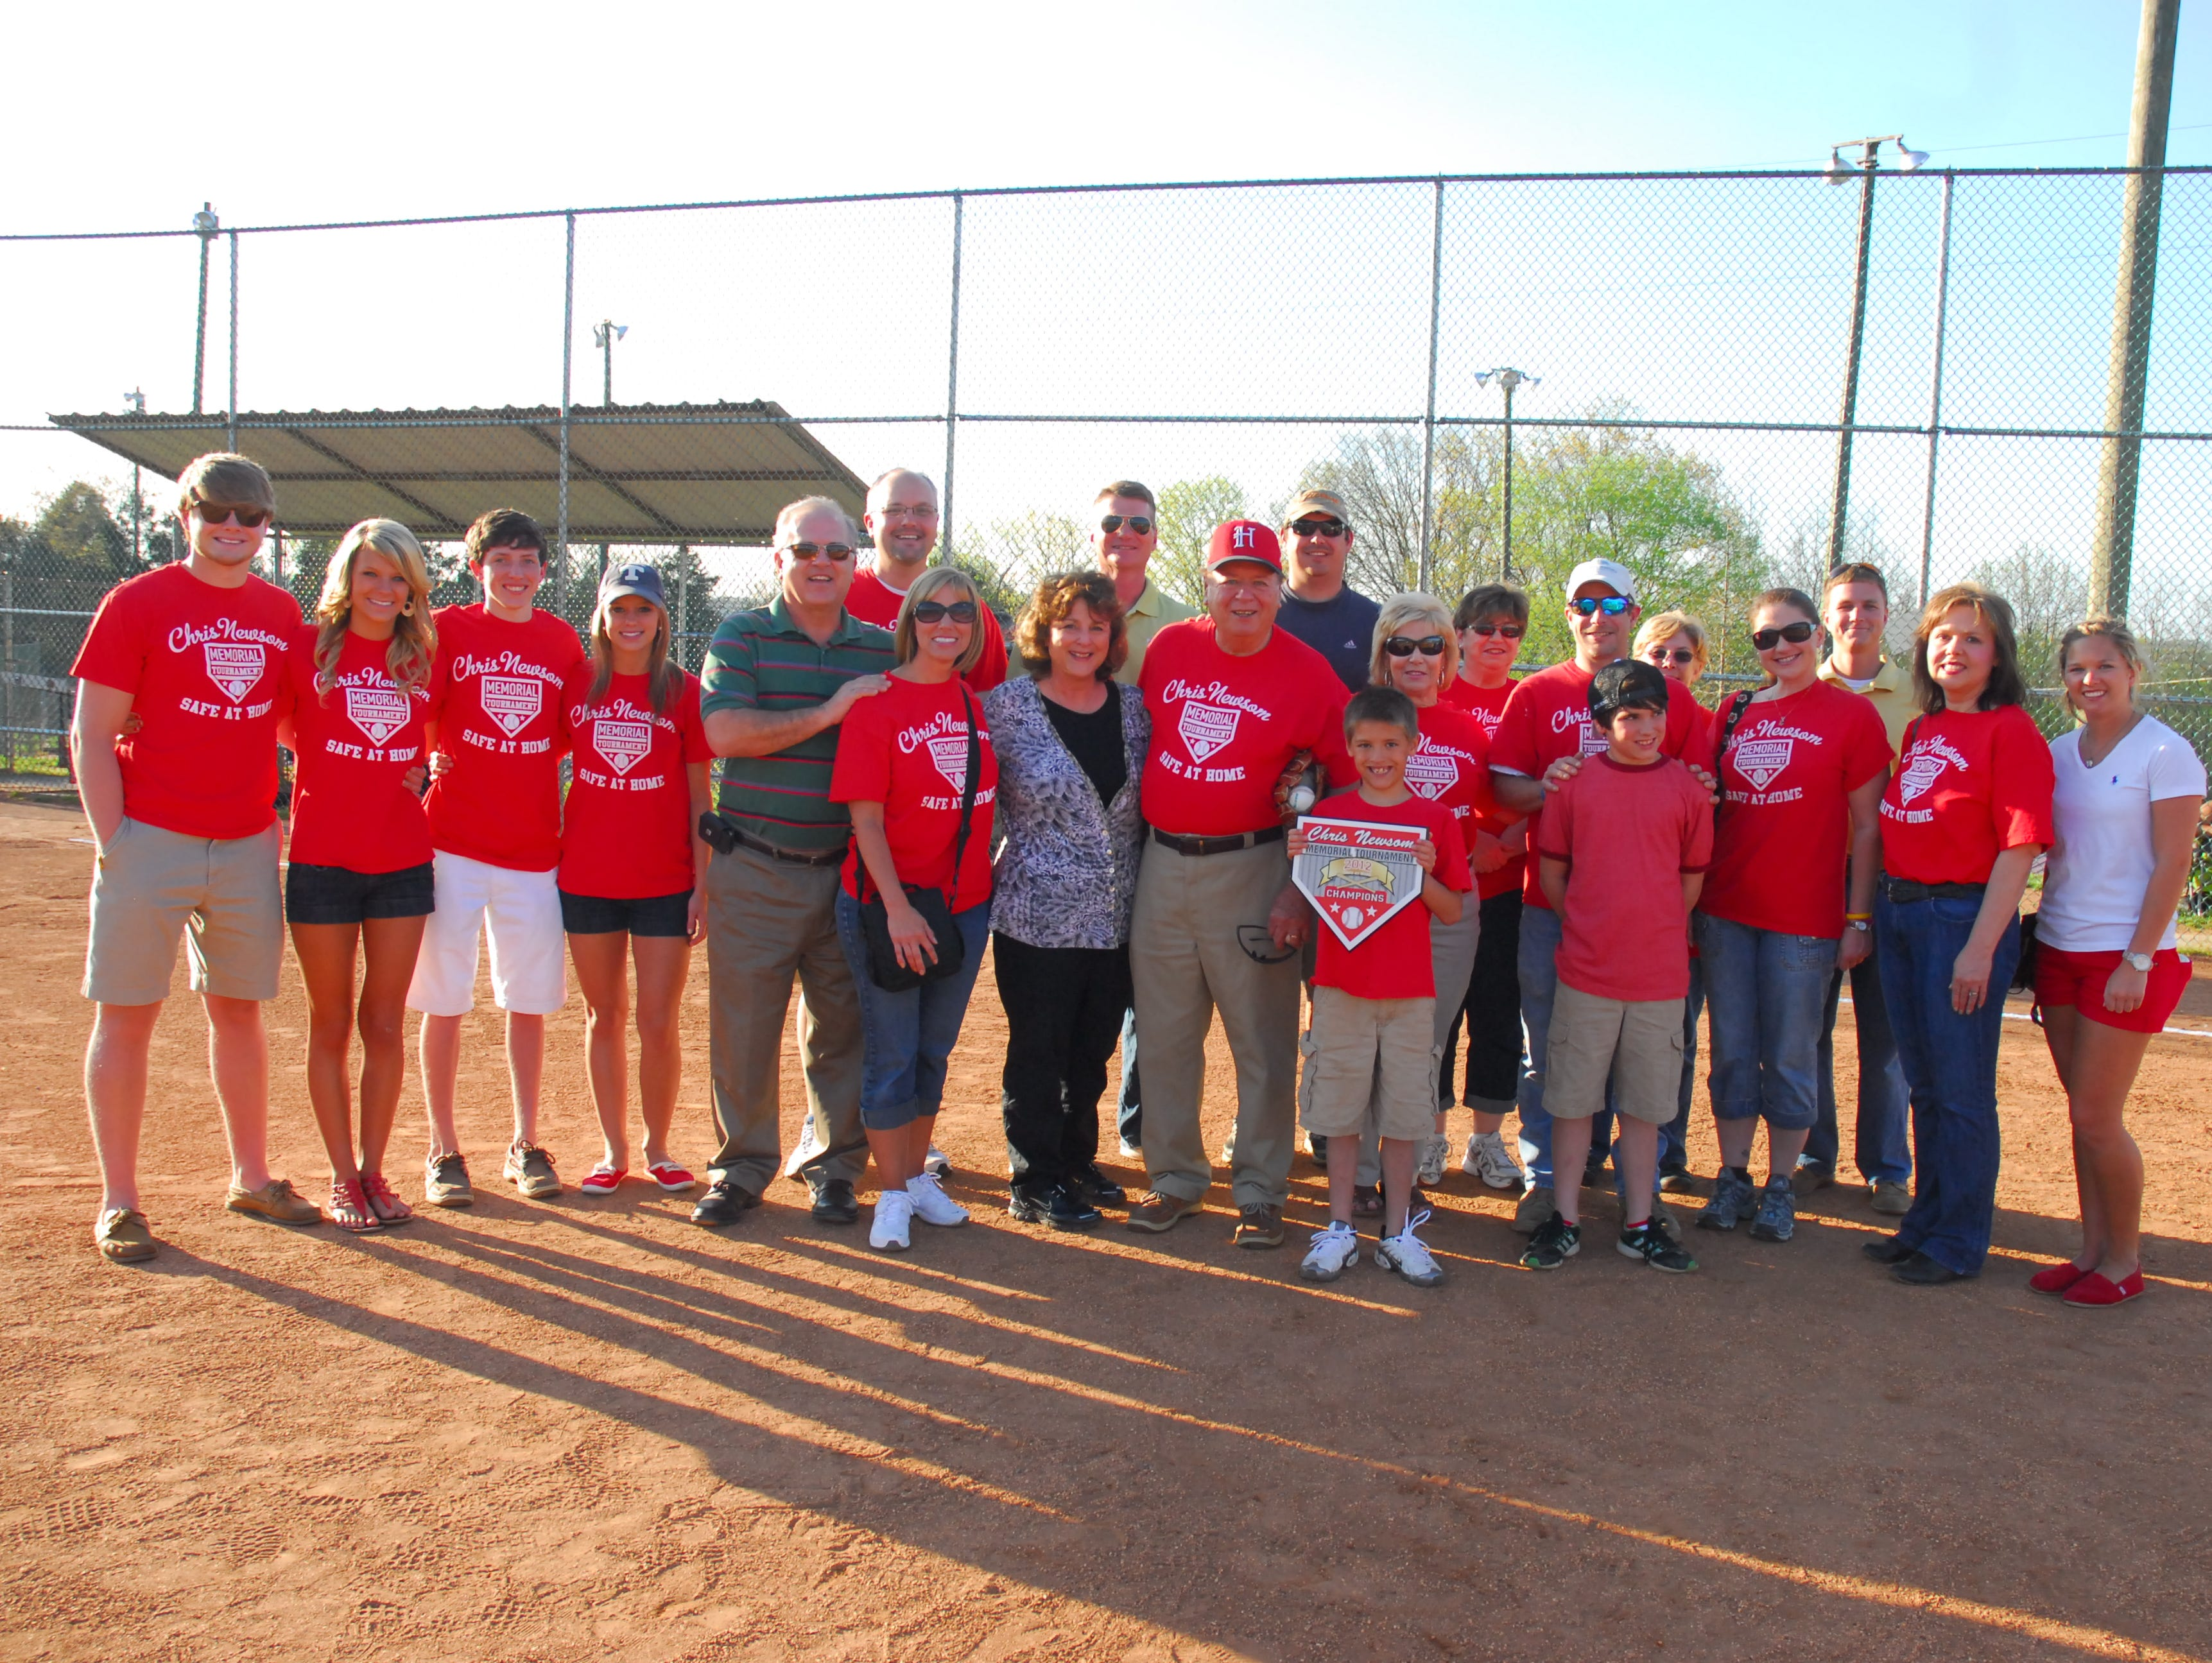 Hugh and Mary Newsom gathered on the field at Halls Park and are surrounded by family and friends at the opening of the tournament in 2012.